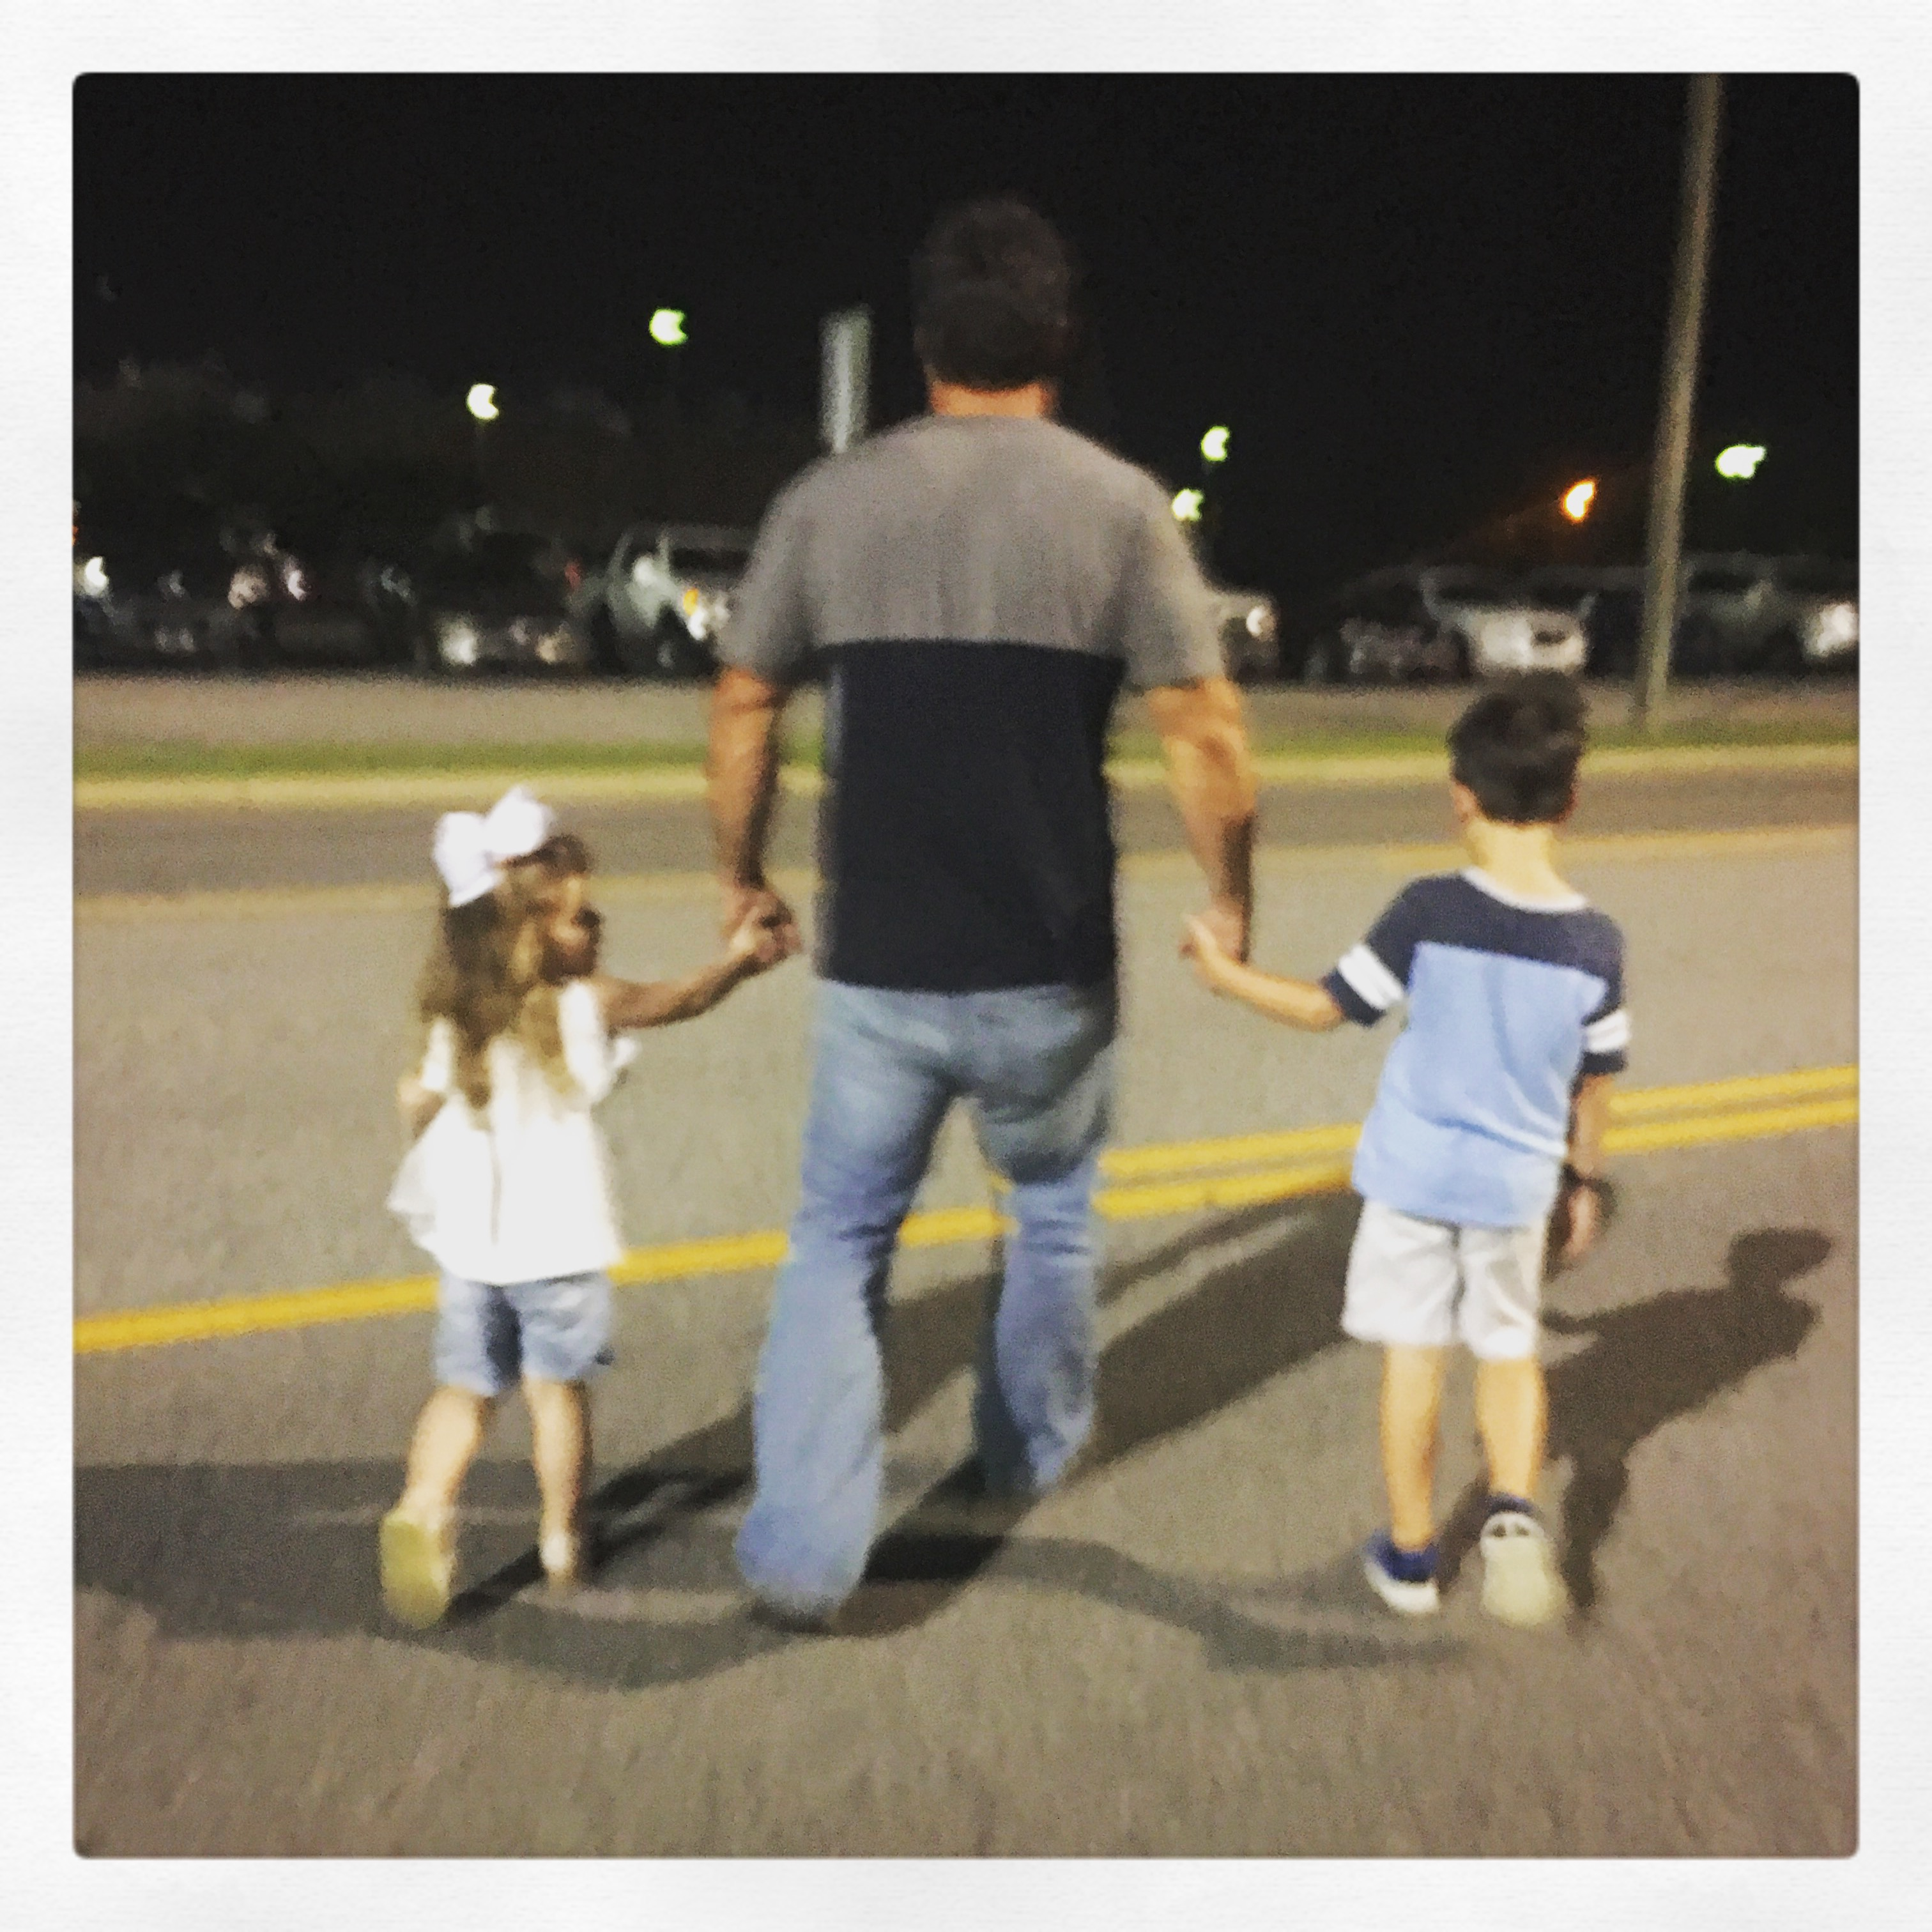 A father to the fatherless - a forever father restoring security and hope to broken families